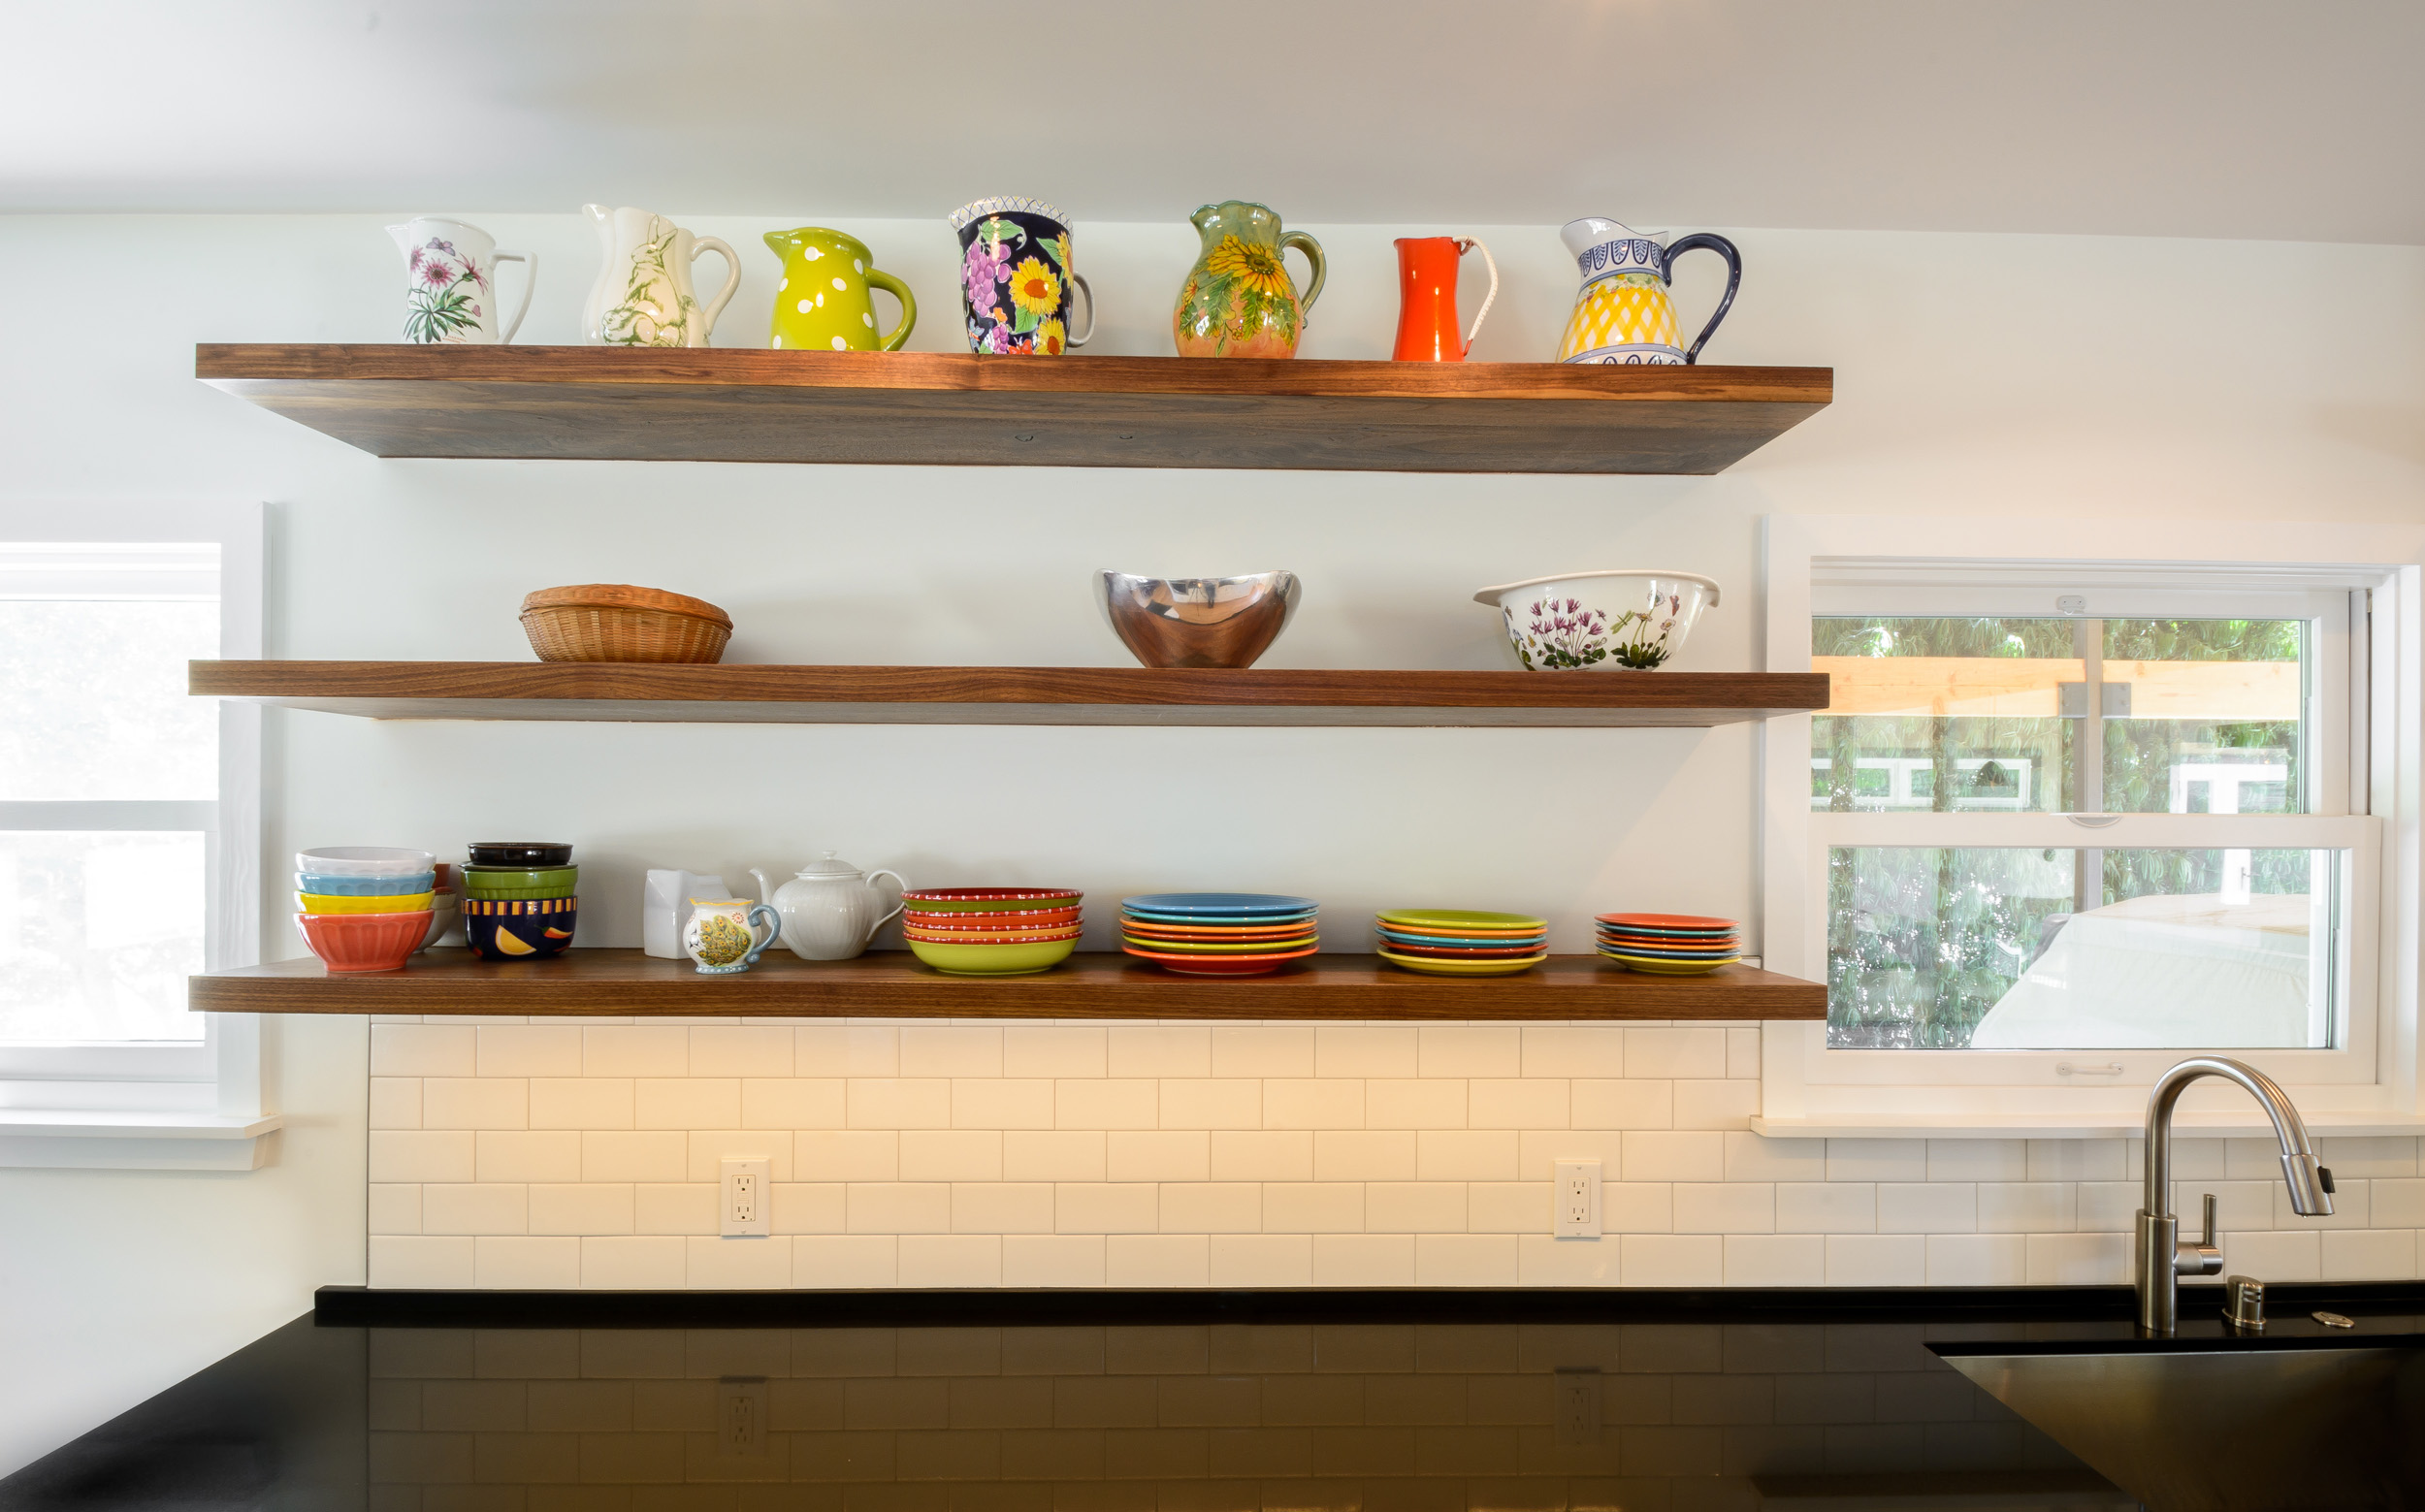 Open shelving design for this mid-century ranch kitchen: walnut floating shelves over a black quartz countertop and a white subway tile backsplash